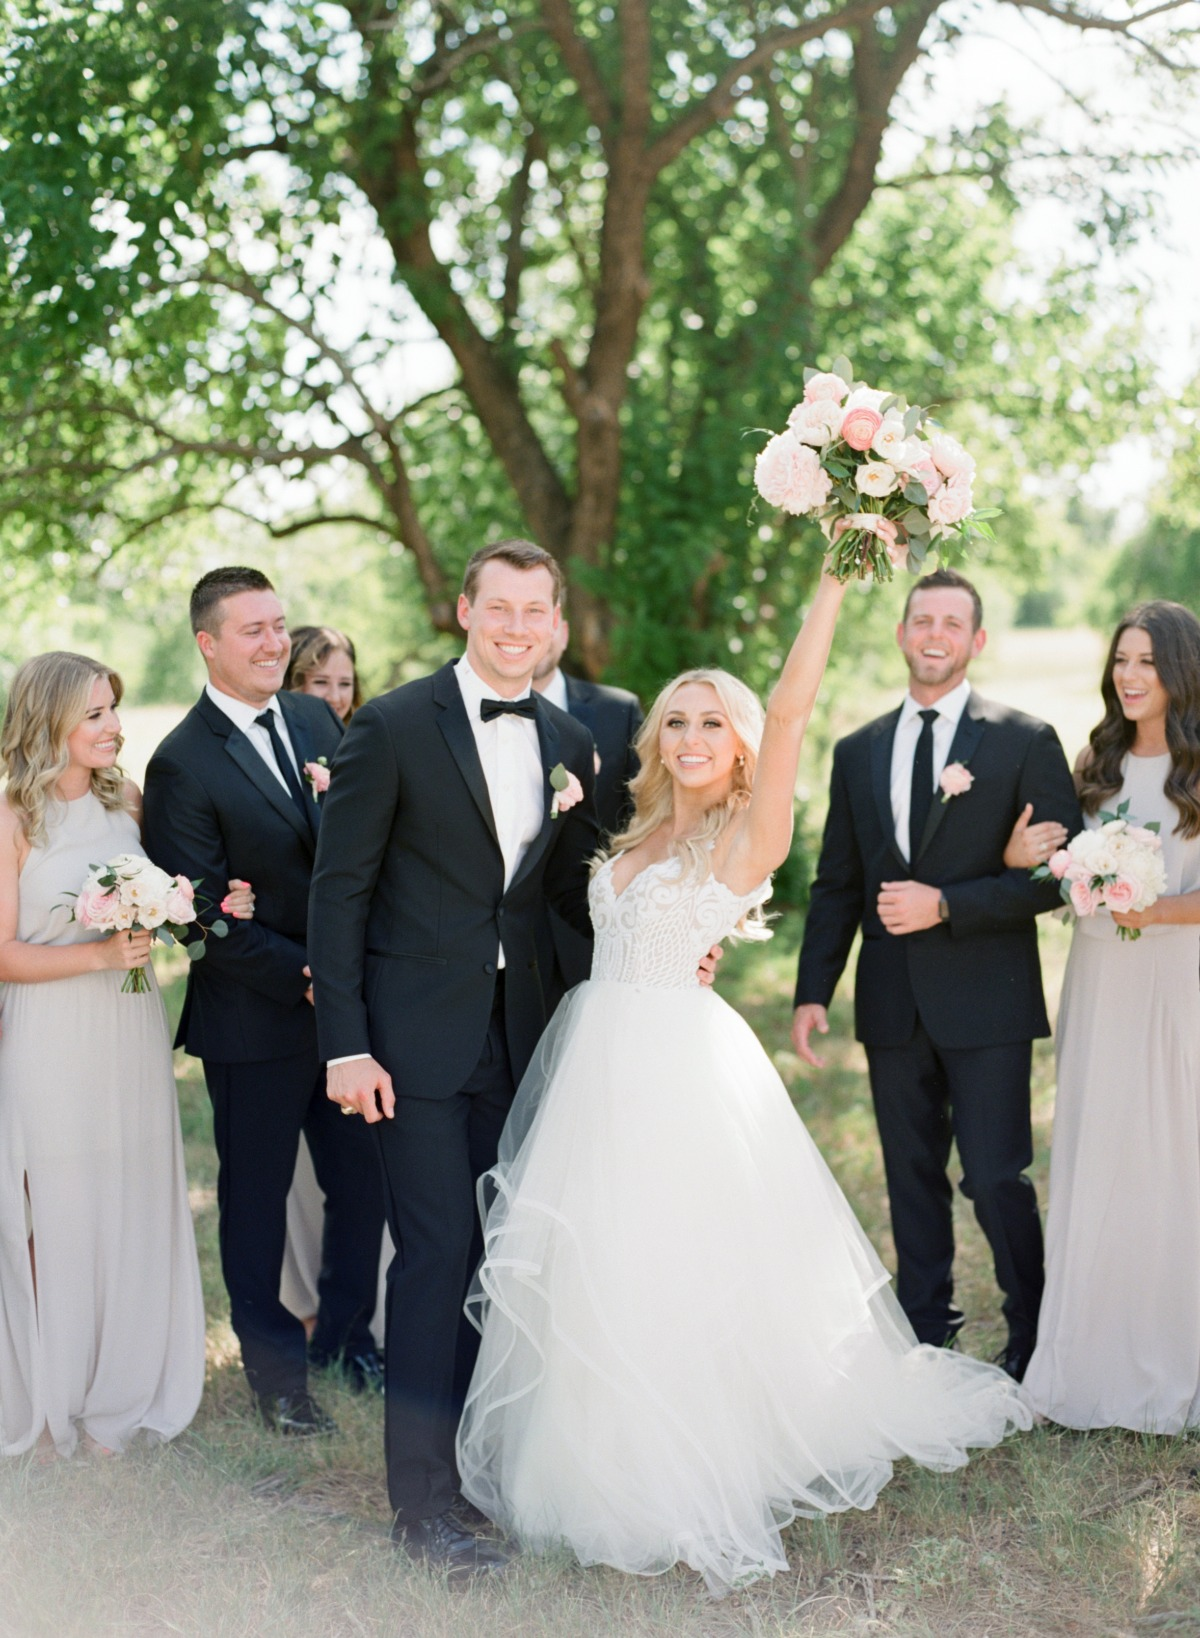 Gorgeous white barn wedding in Texas